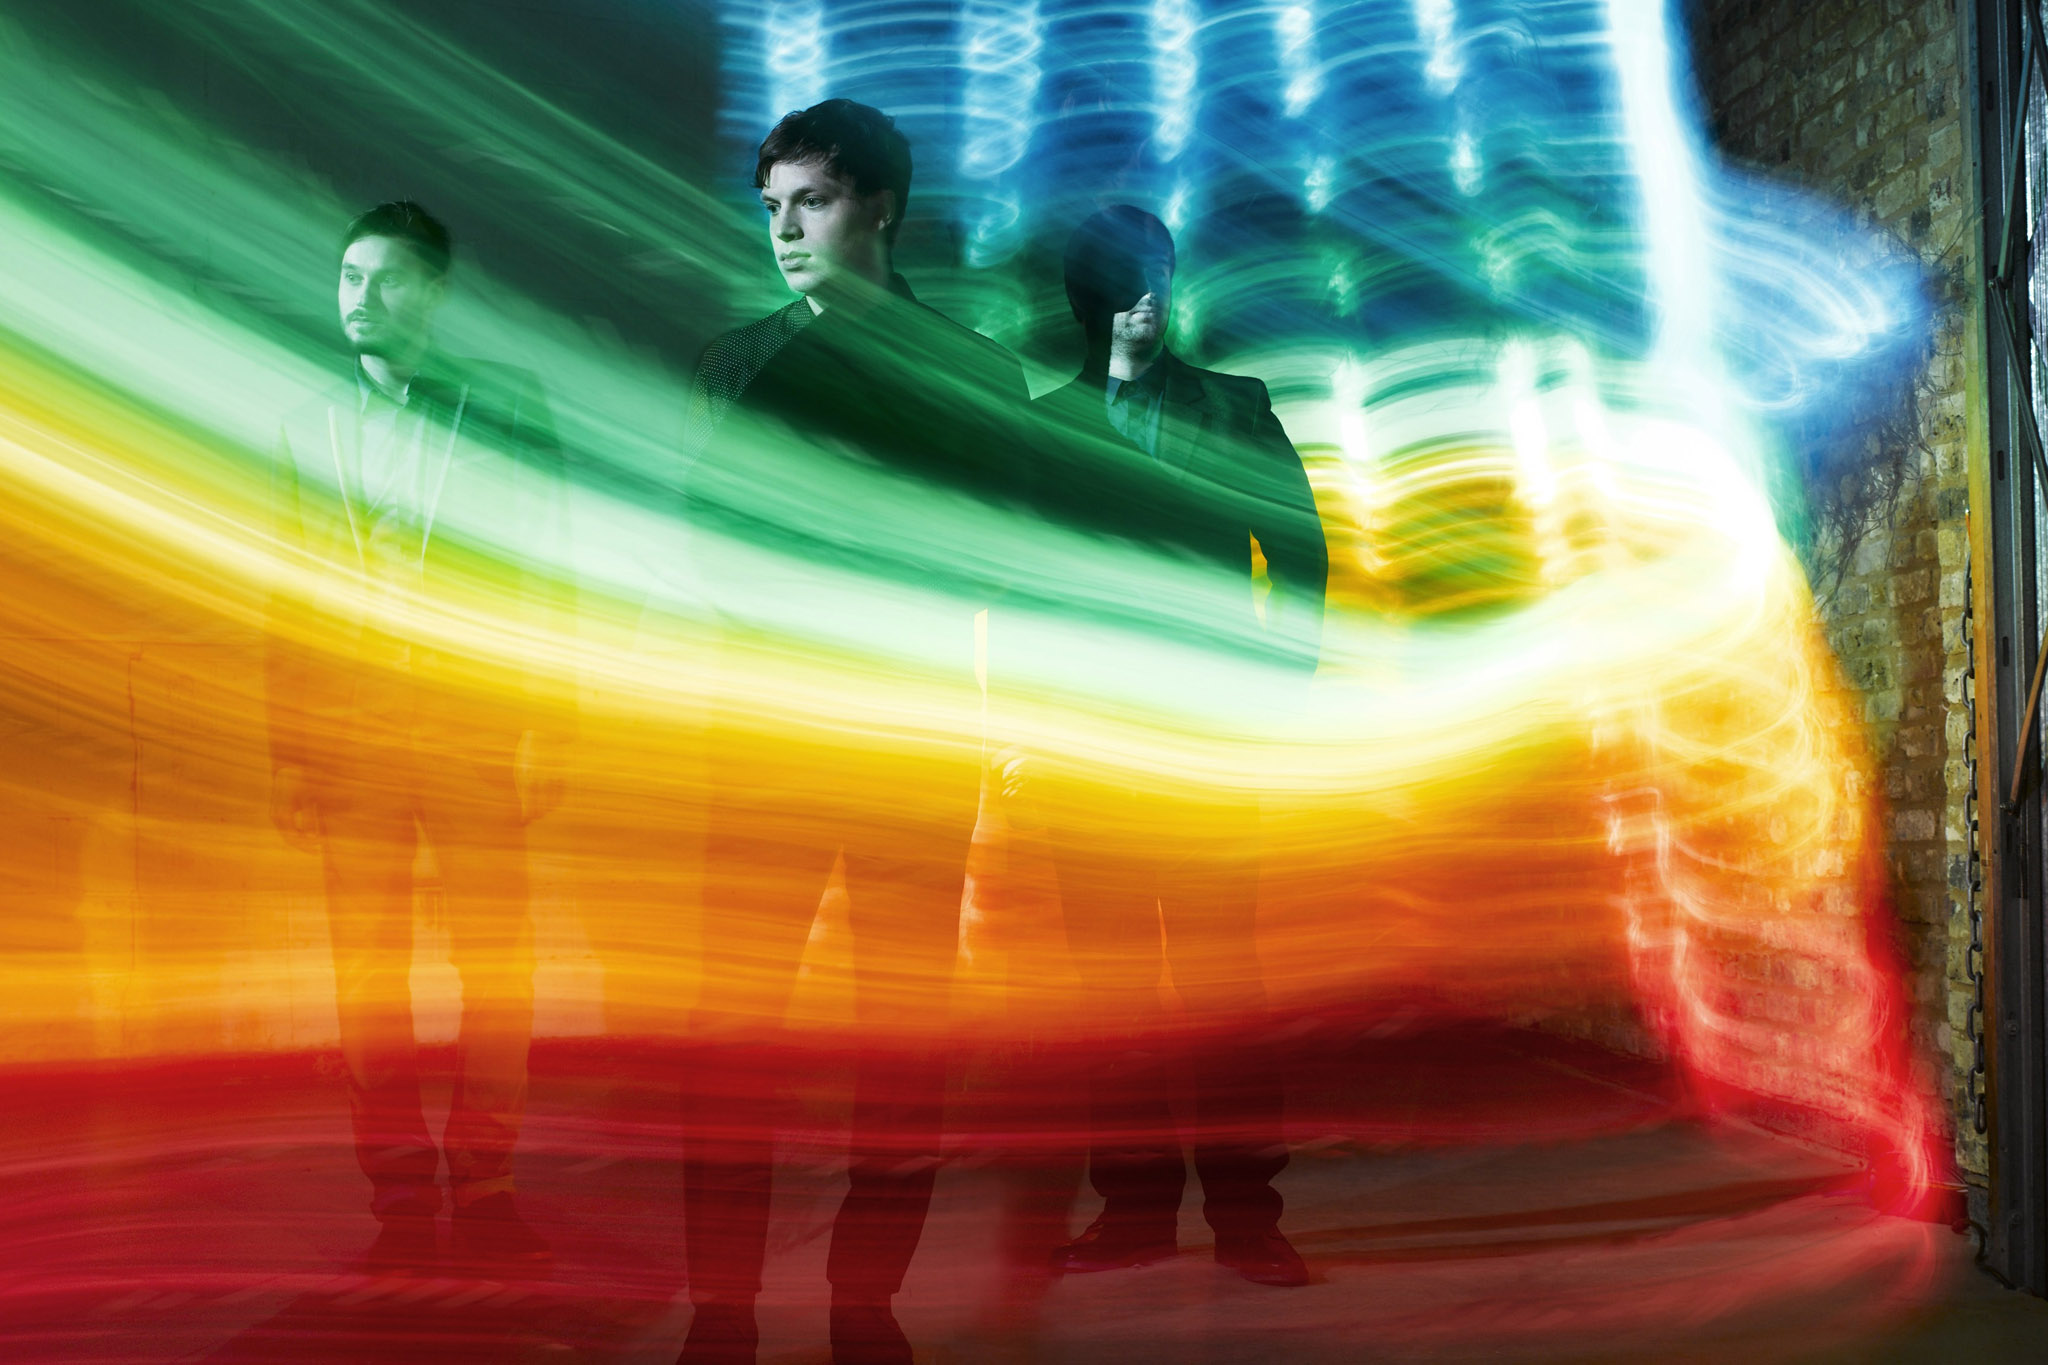 Friendly Fires: what the hell are they up to?